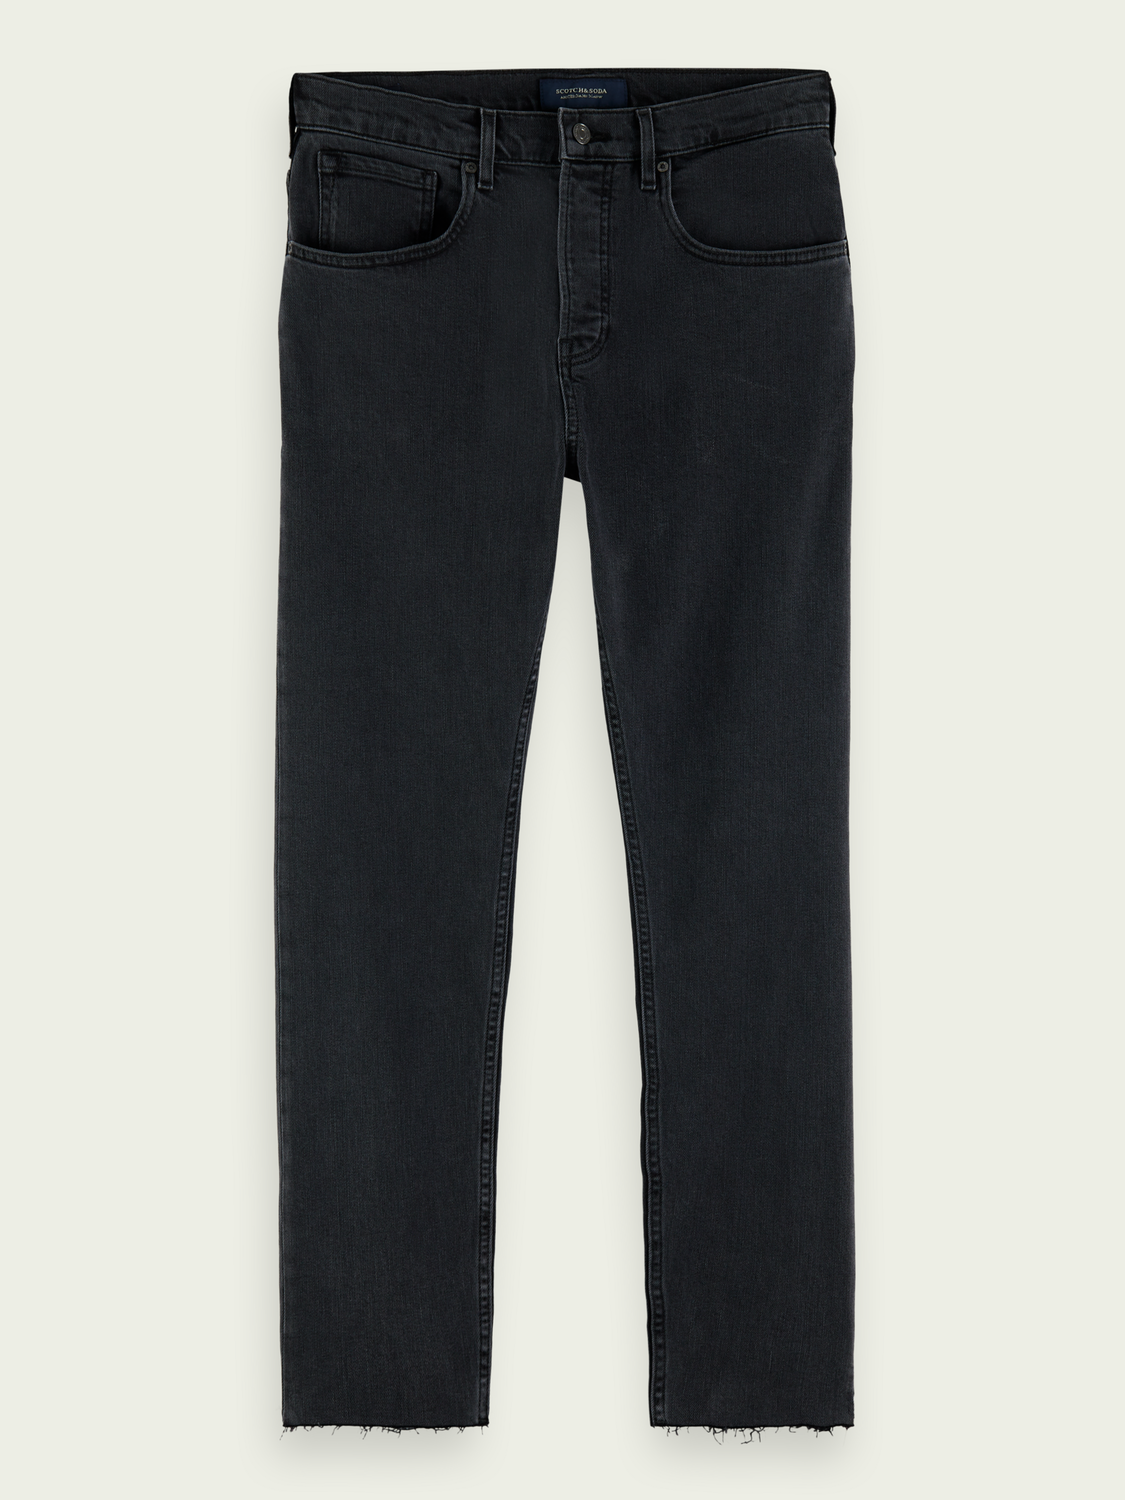 All Black trousers